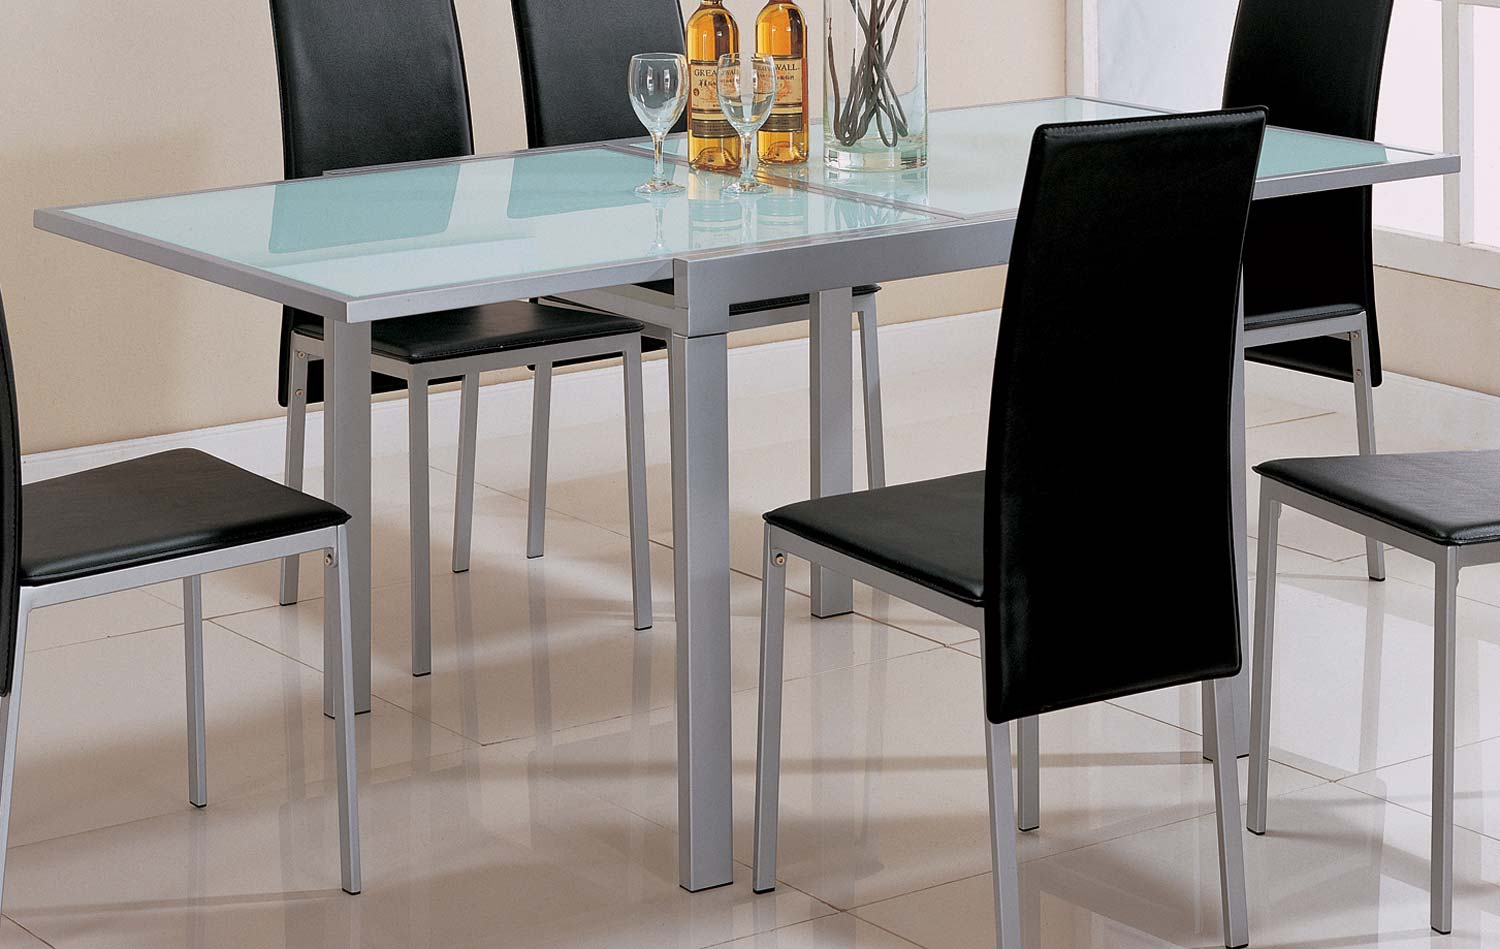 Coaster sunrise frosted glass top dining table 120211 at for Frosted glass dining table